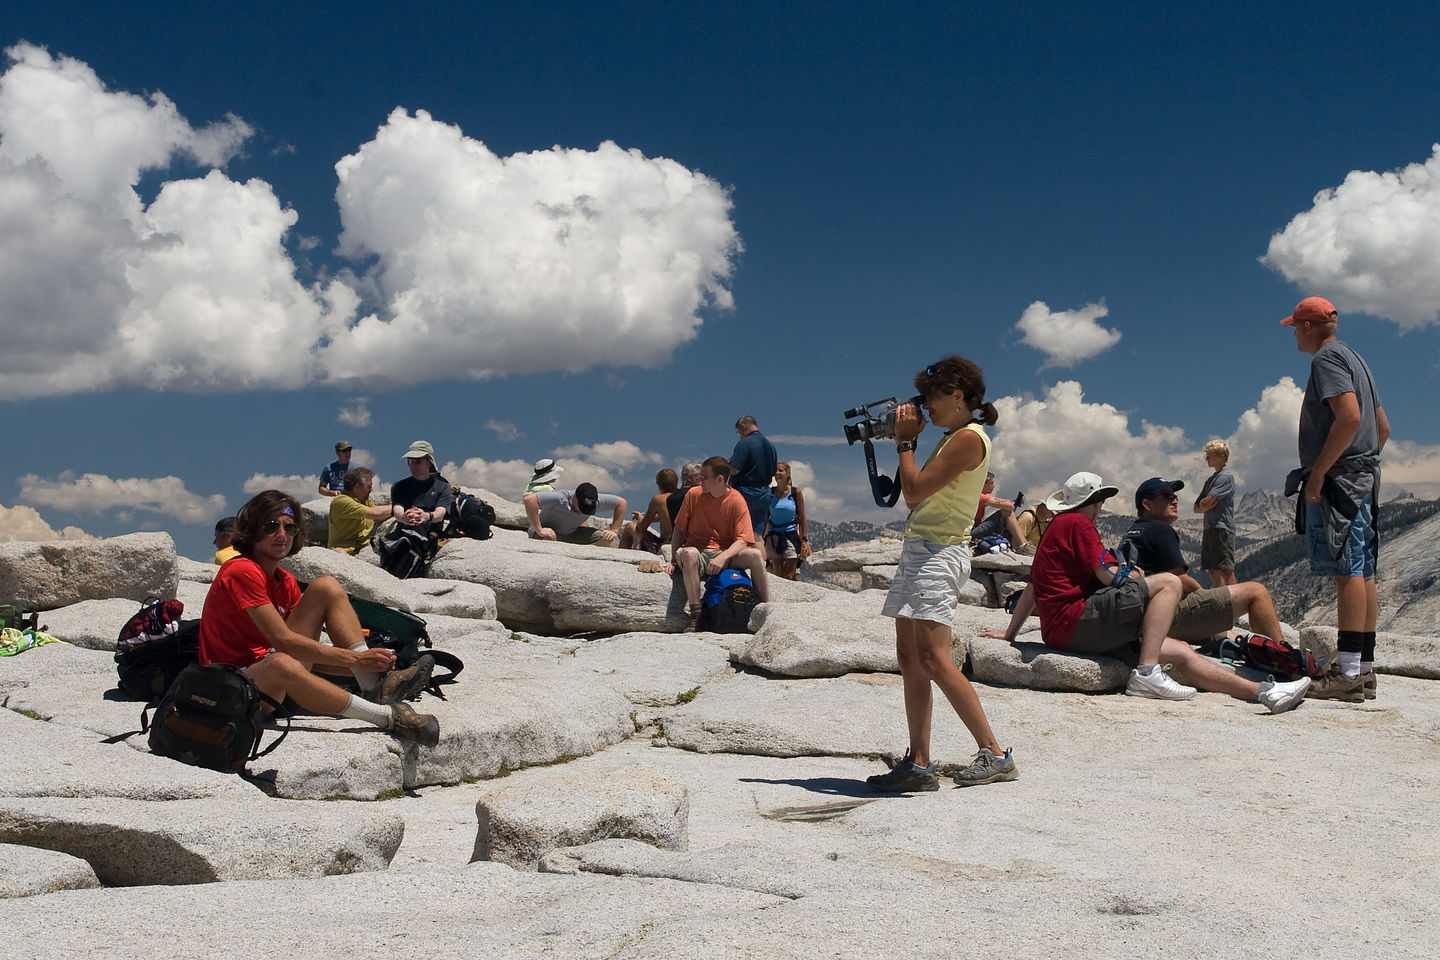 Lolo videotaping on Half Dome summit